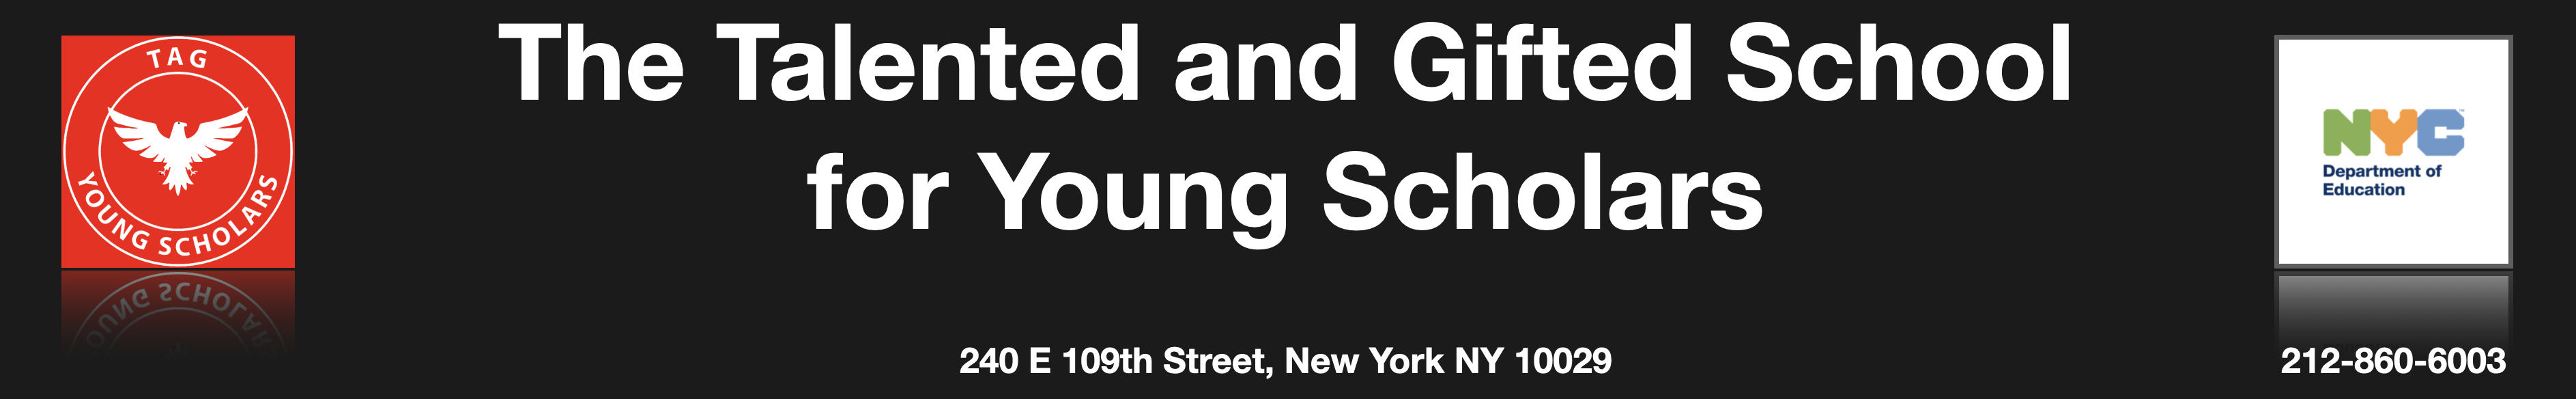 Talented and Gifted School for Young Scholars